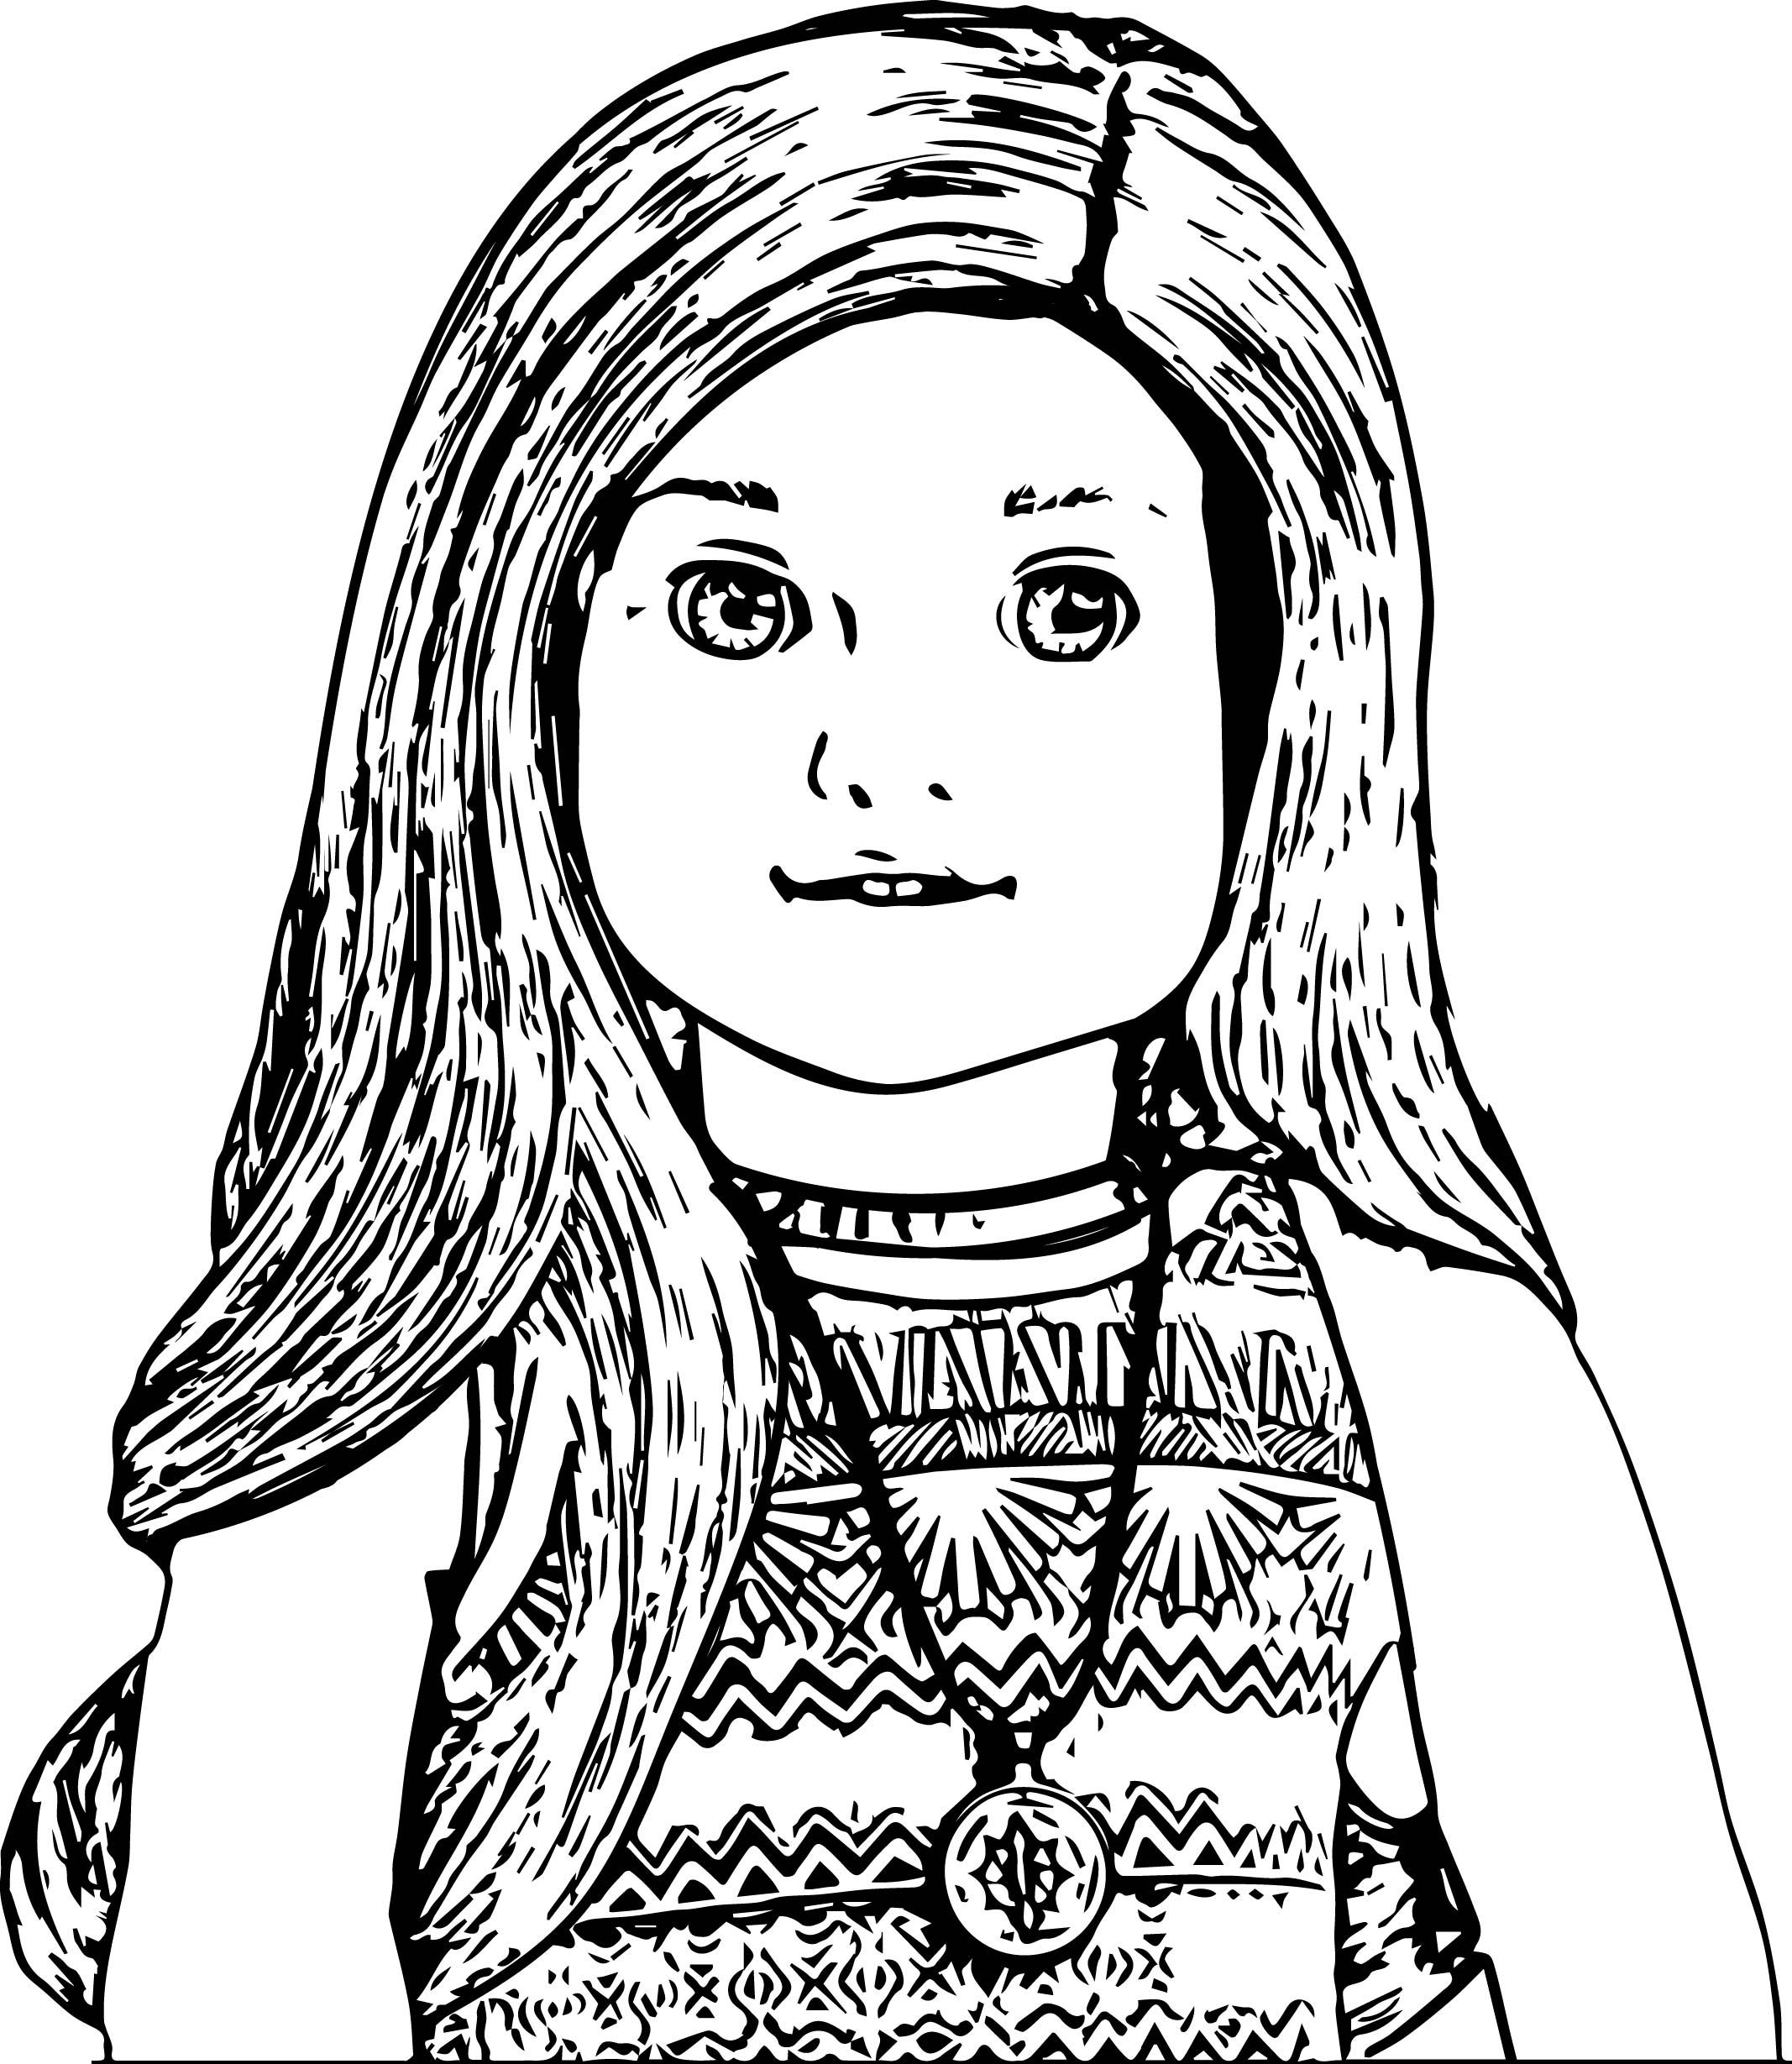 american girl grace thomas coloring pages | American Doll Lea Closeup Coloring Page | American boy ...